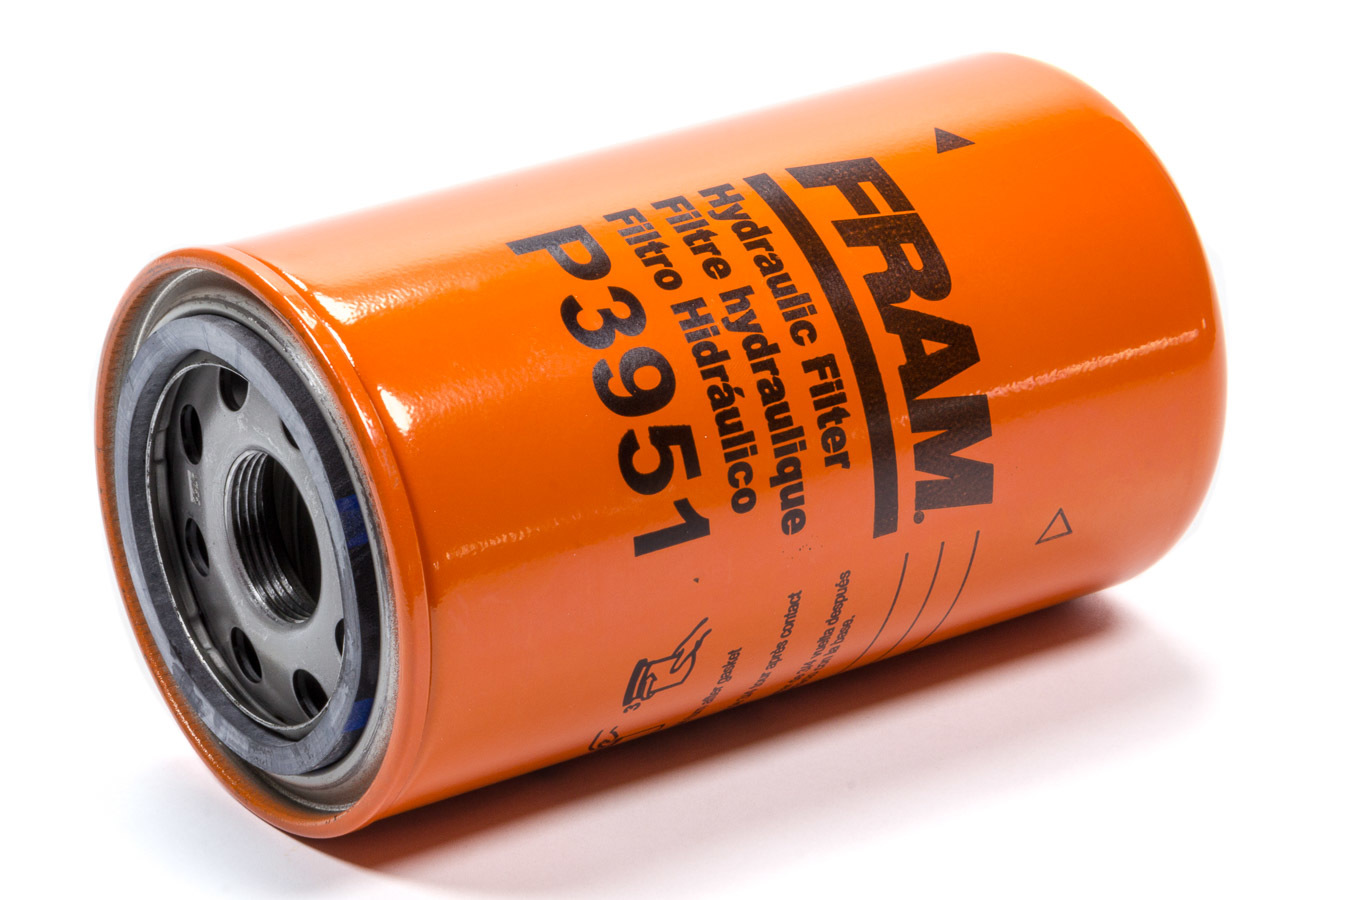 Fram P3951 Oil Filter, Hydraulic, Canister, Screw-On, 6.891 in Tall, 1-1/8-16 in Thread, Steel, Orange, Various Applications, Each